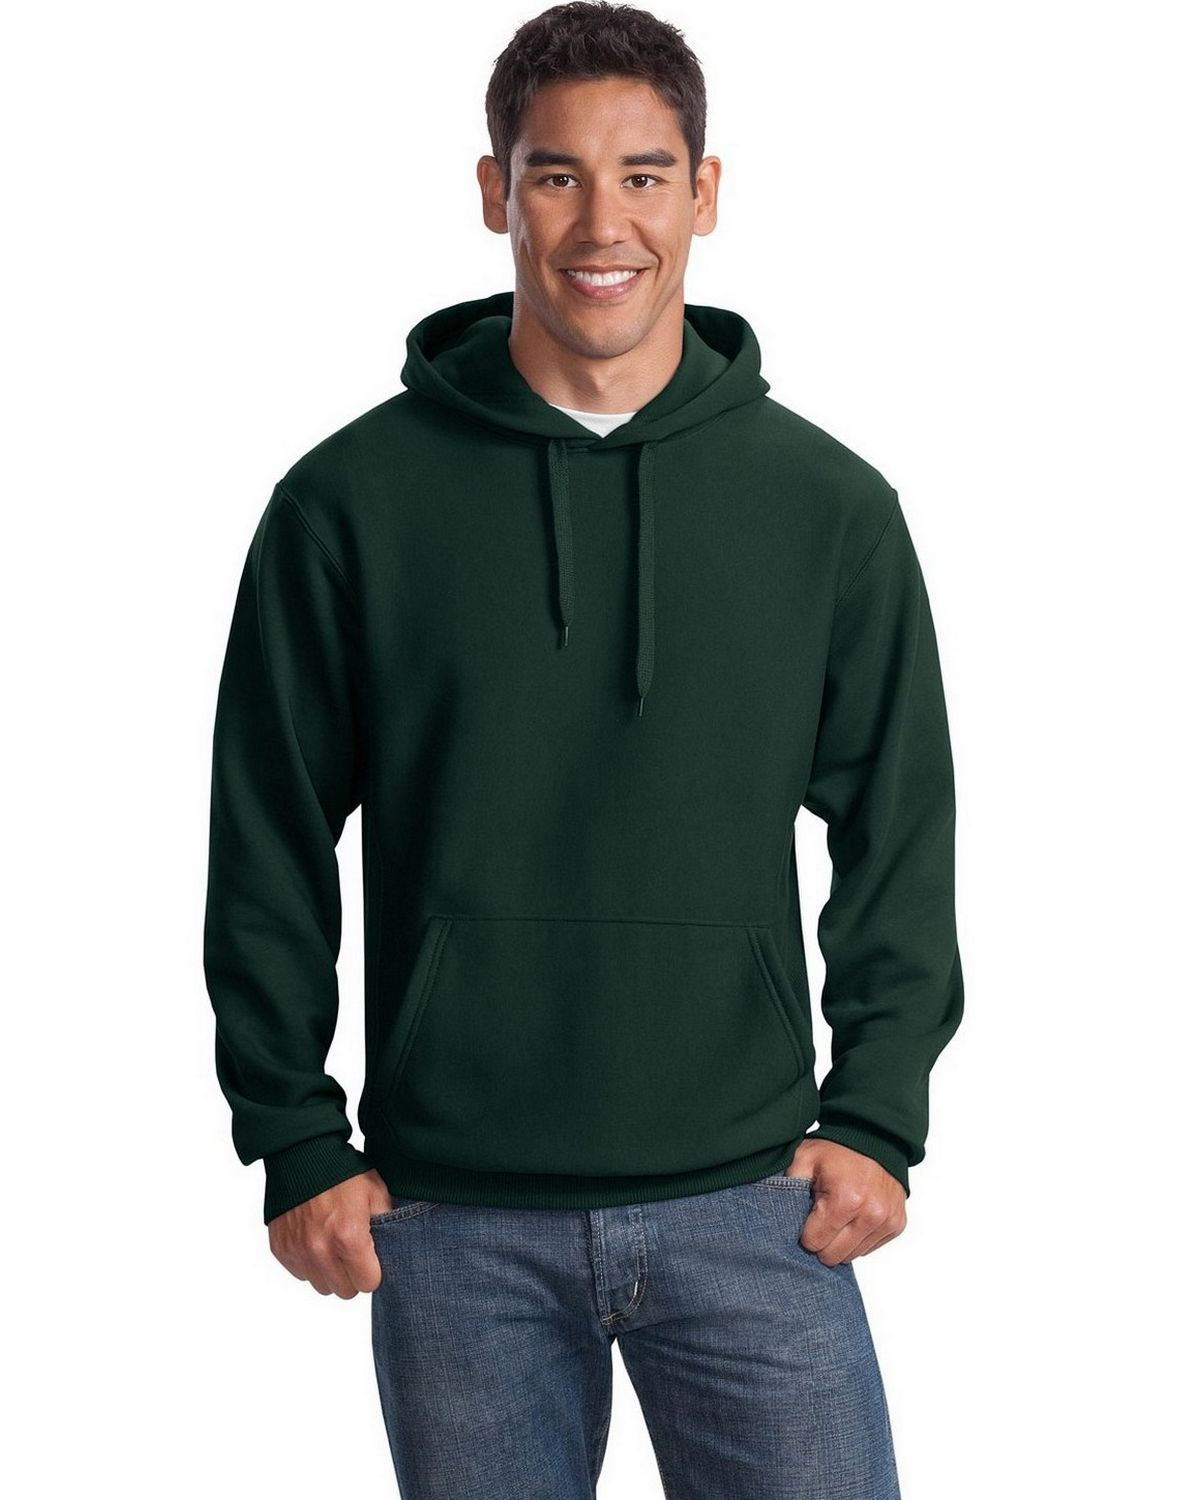 Sport-Tek F281 Super Heavyweight Pullover Hooded Sweatshirt - Dark Green - M F281